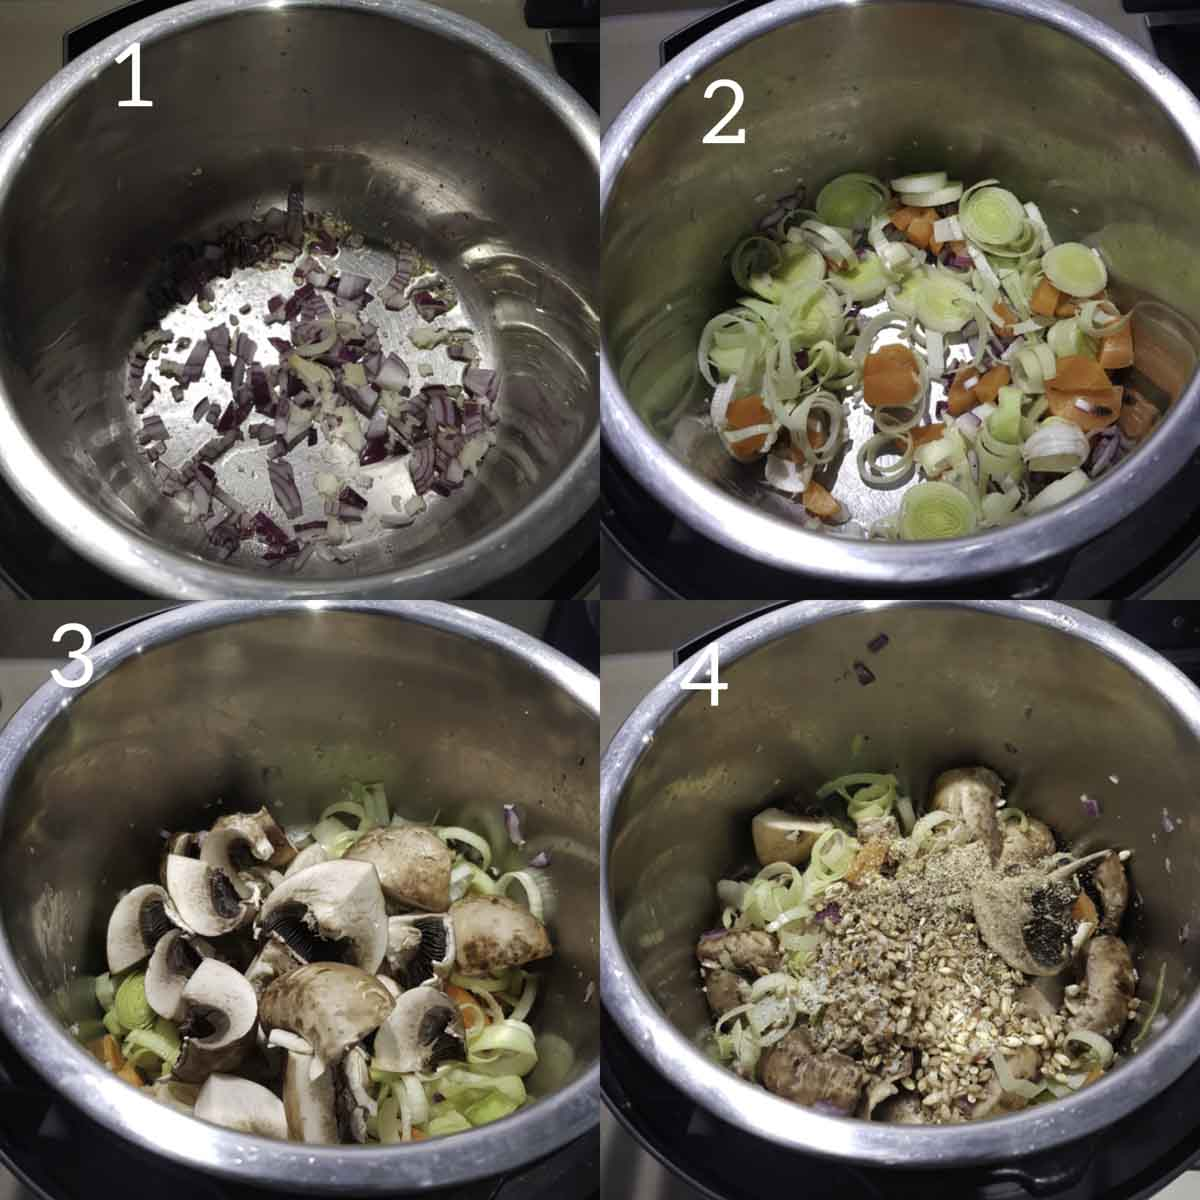 a collage of steps showing sautéing vegetables, adding barley and spices to instant pot